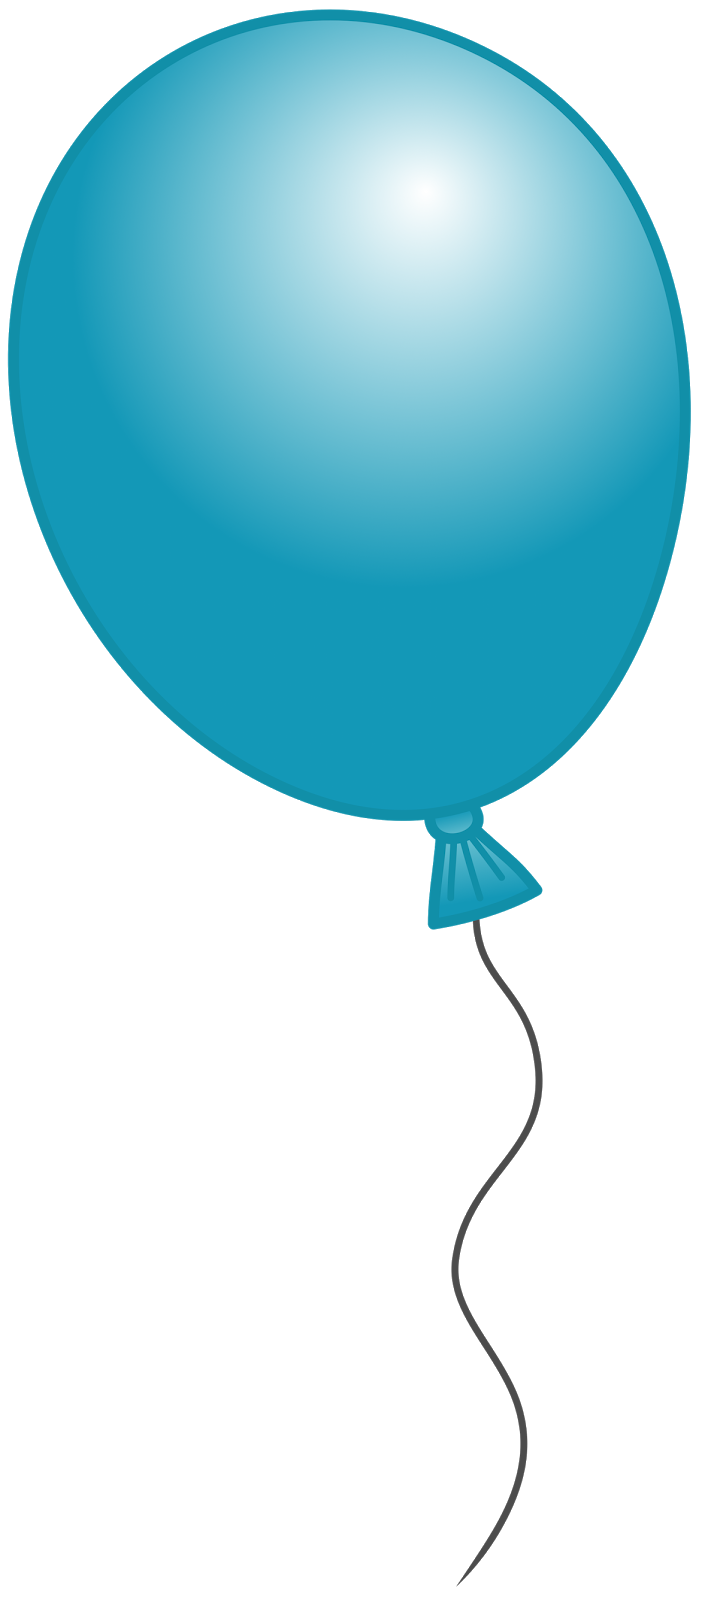 Ballon clipart balloon clipart free image the cliparts